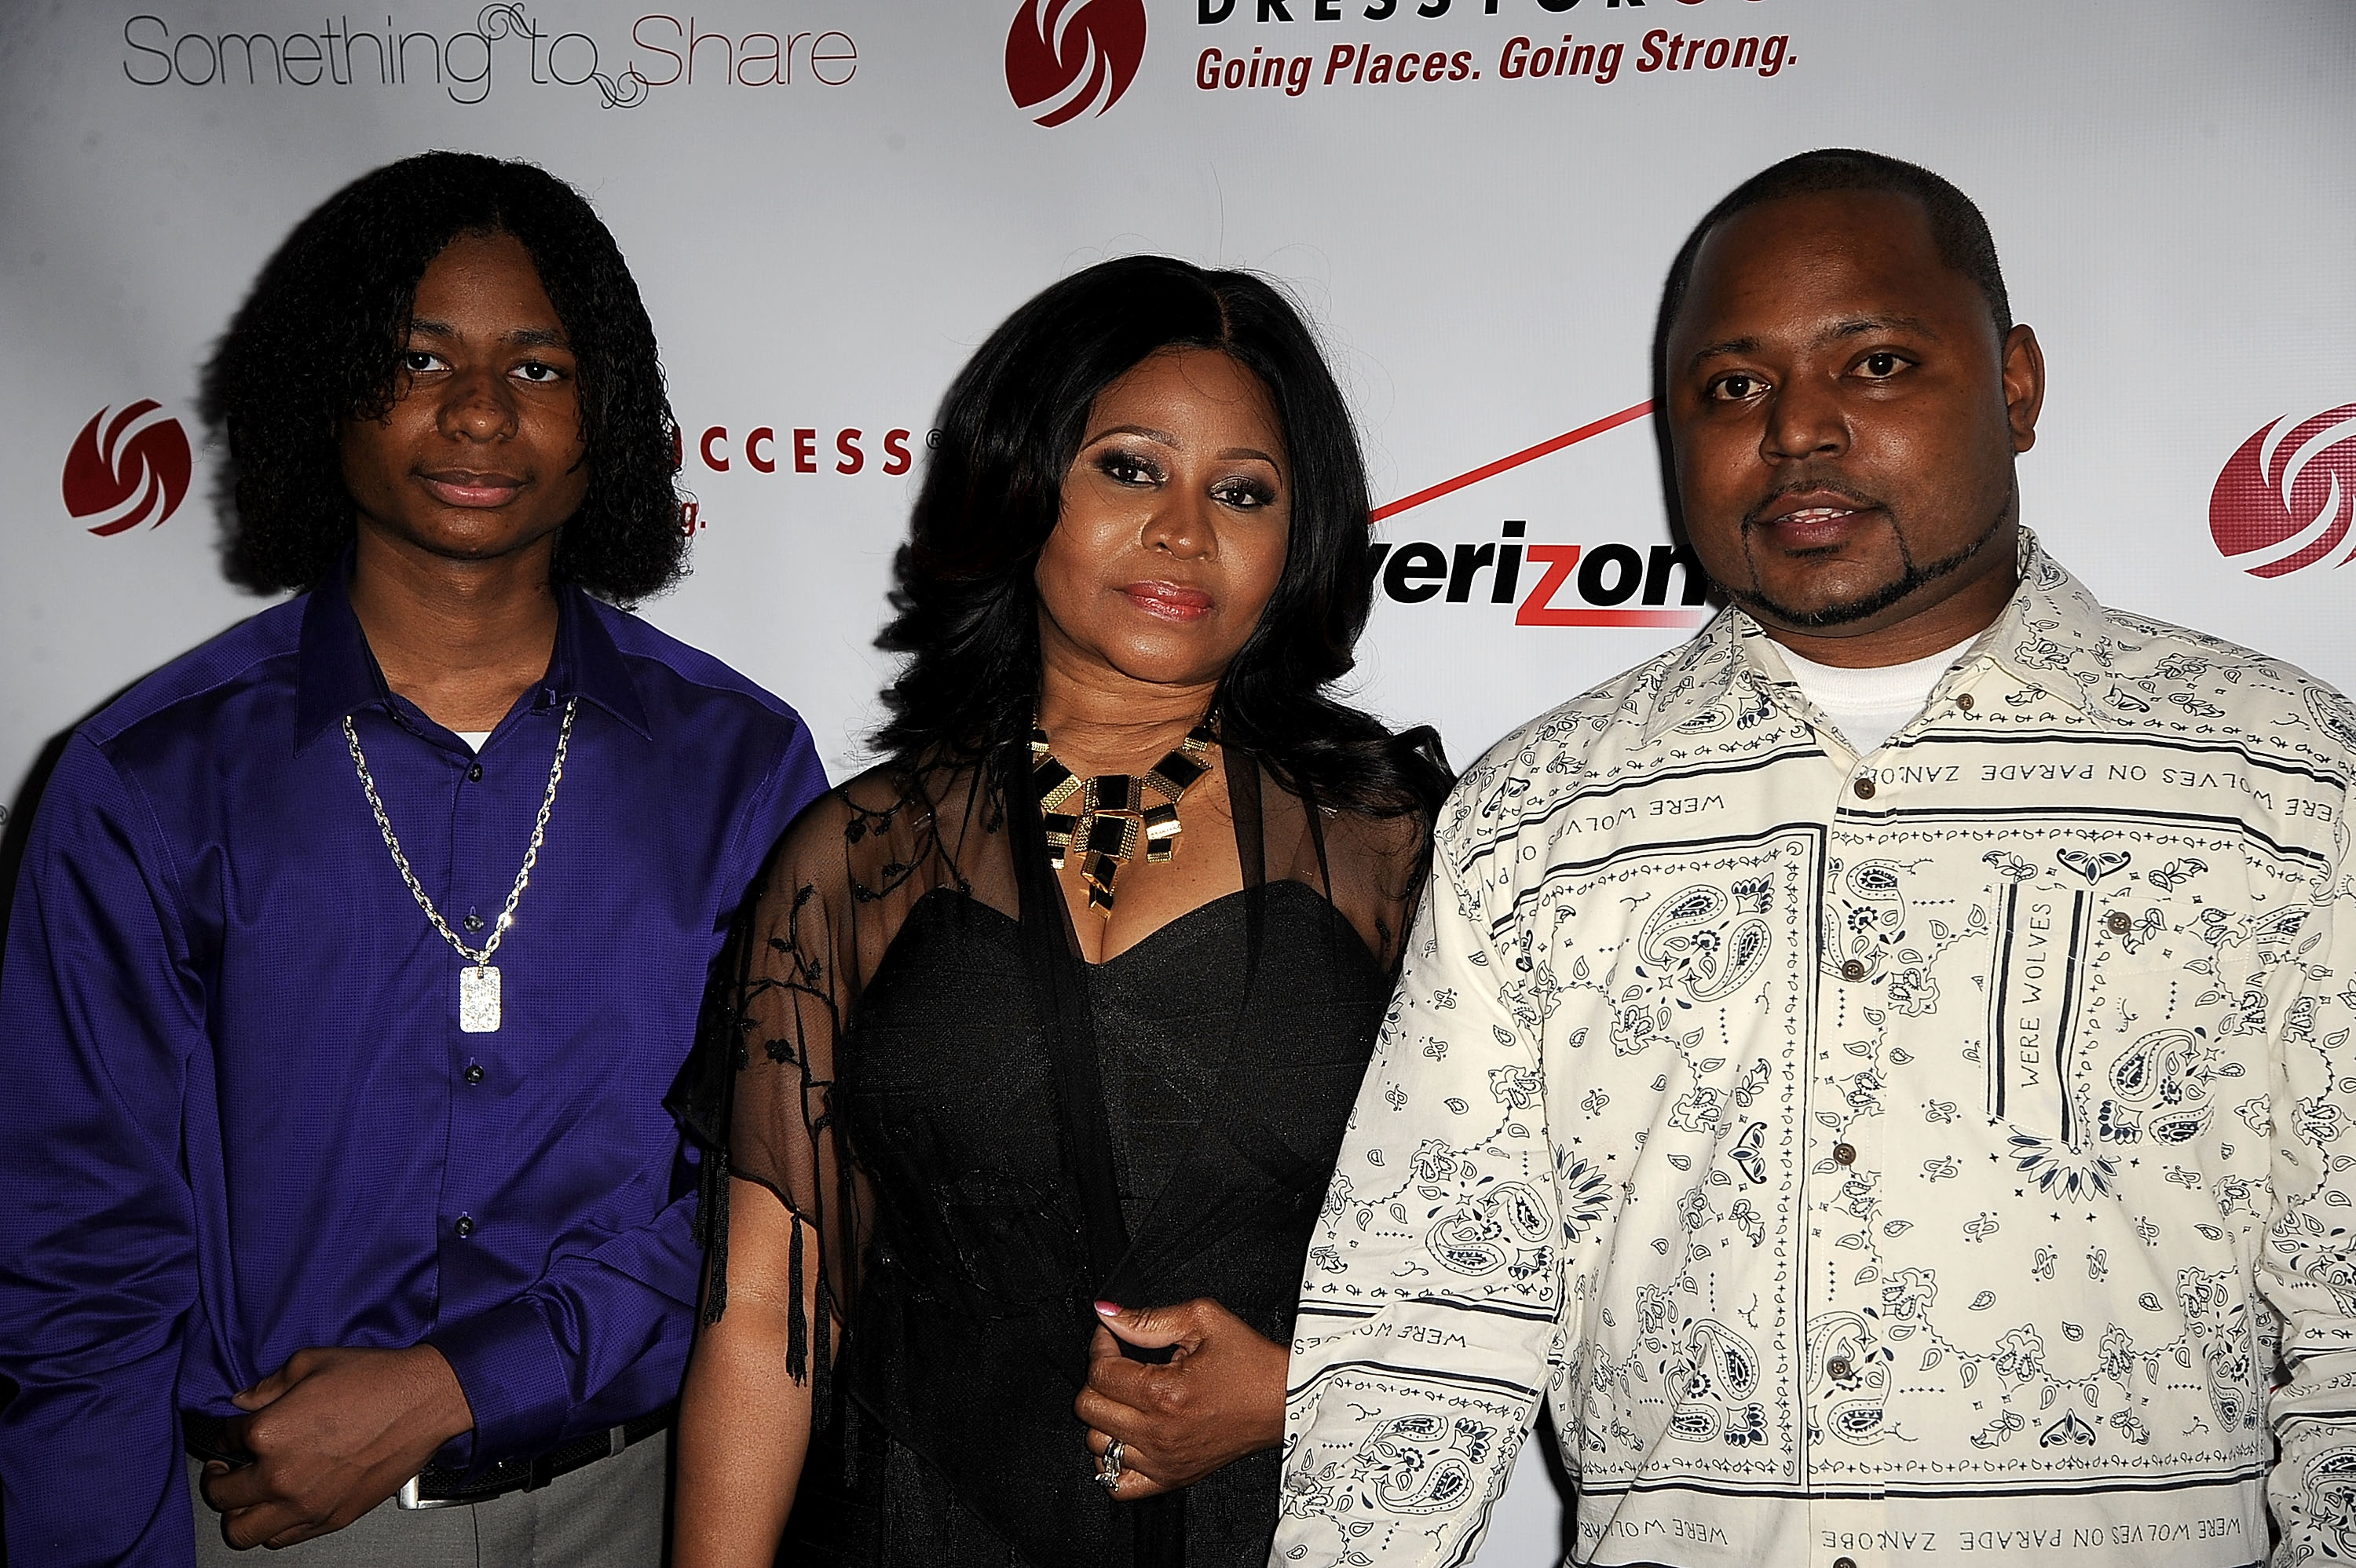 2015 Dress For Success Something To Share Gala